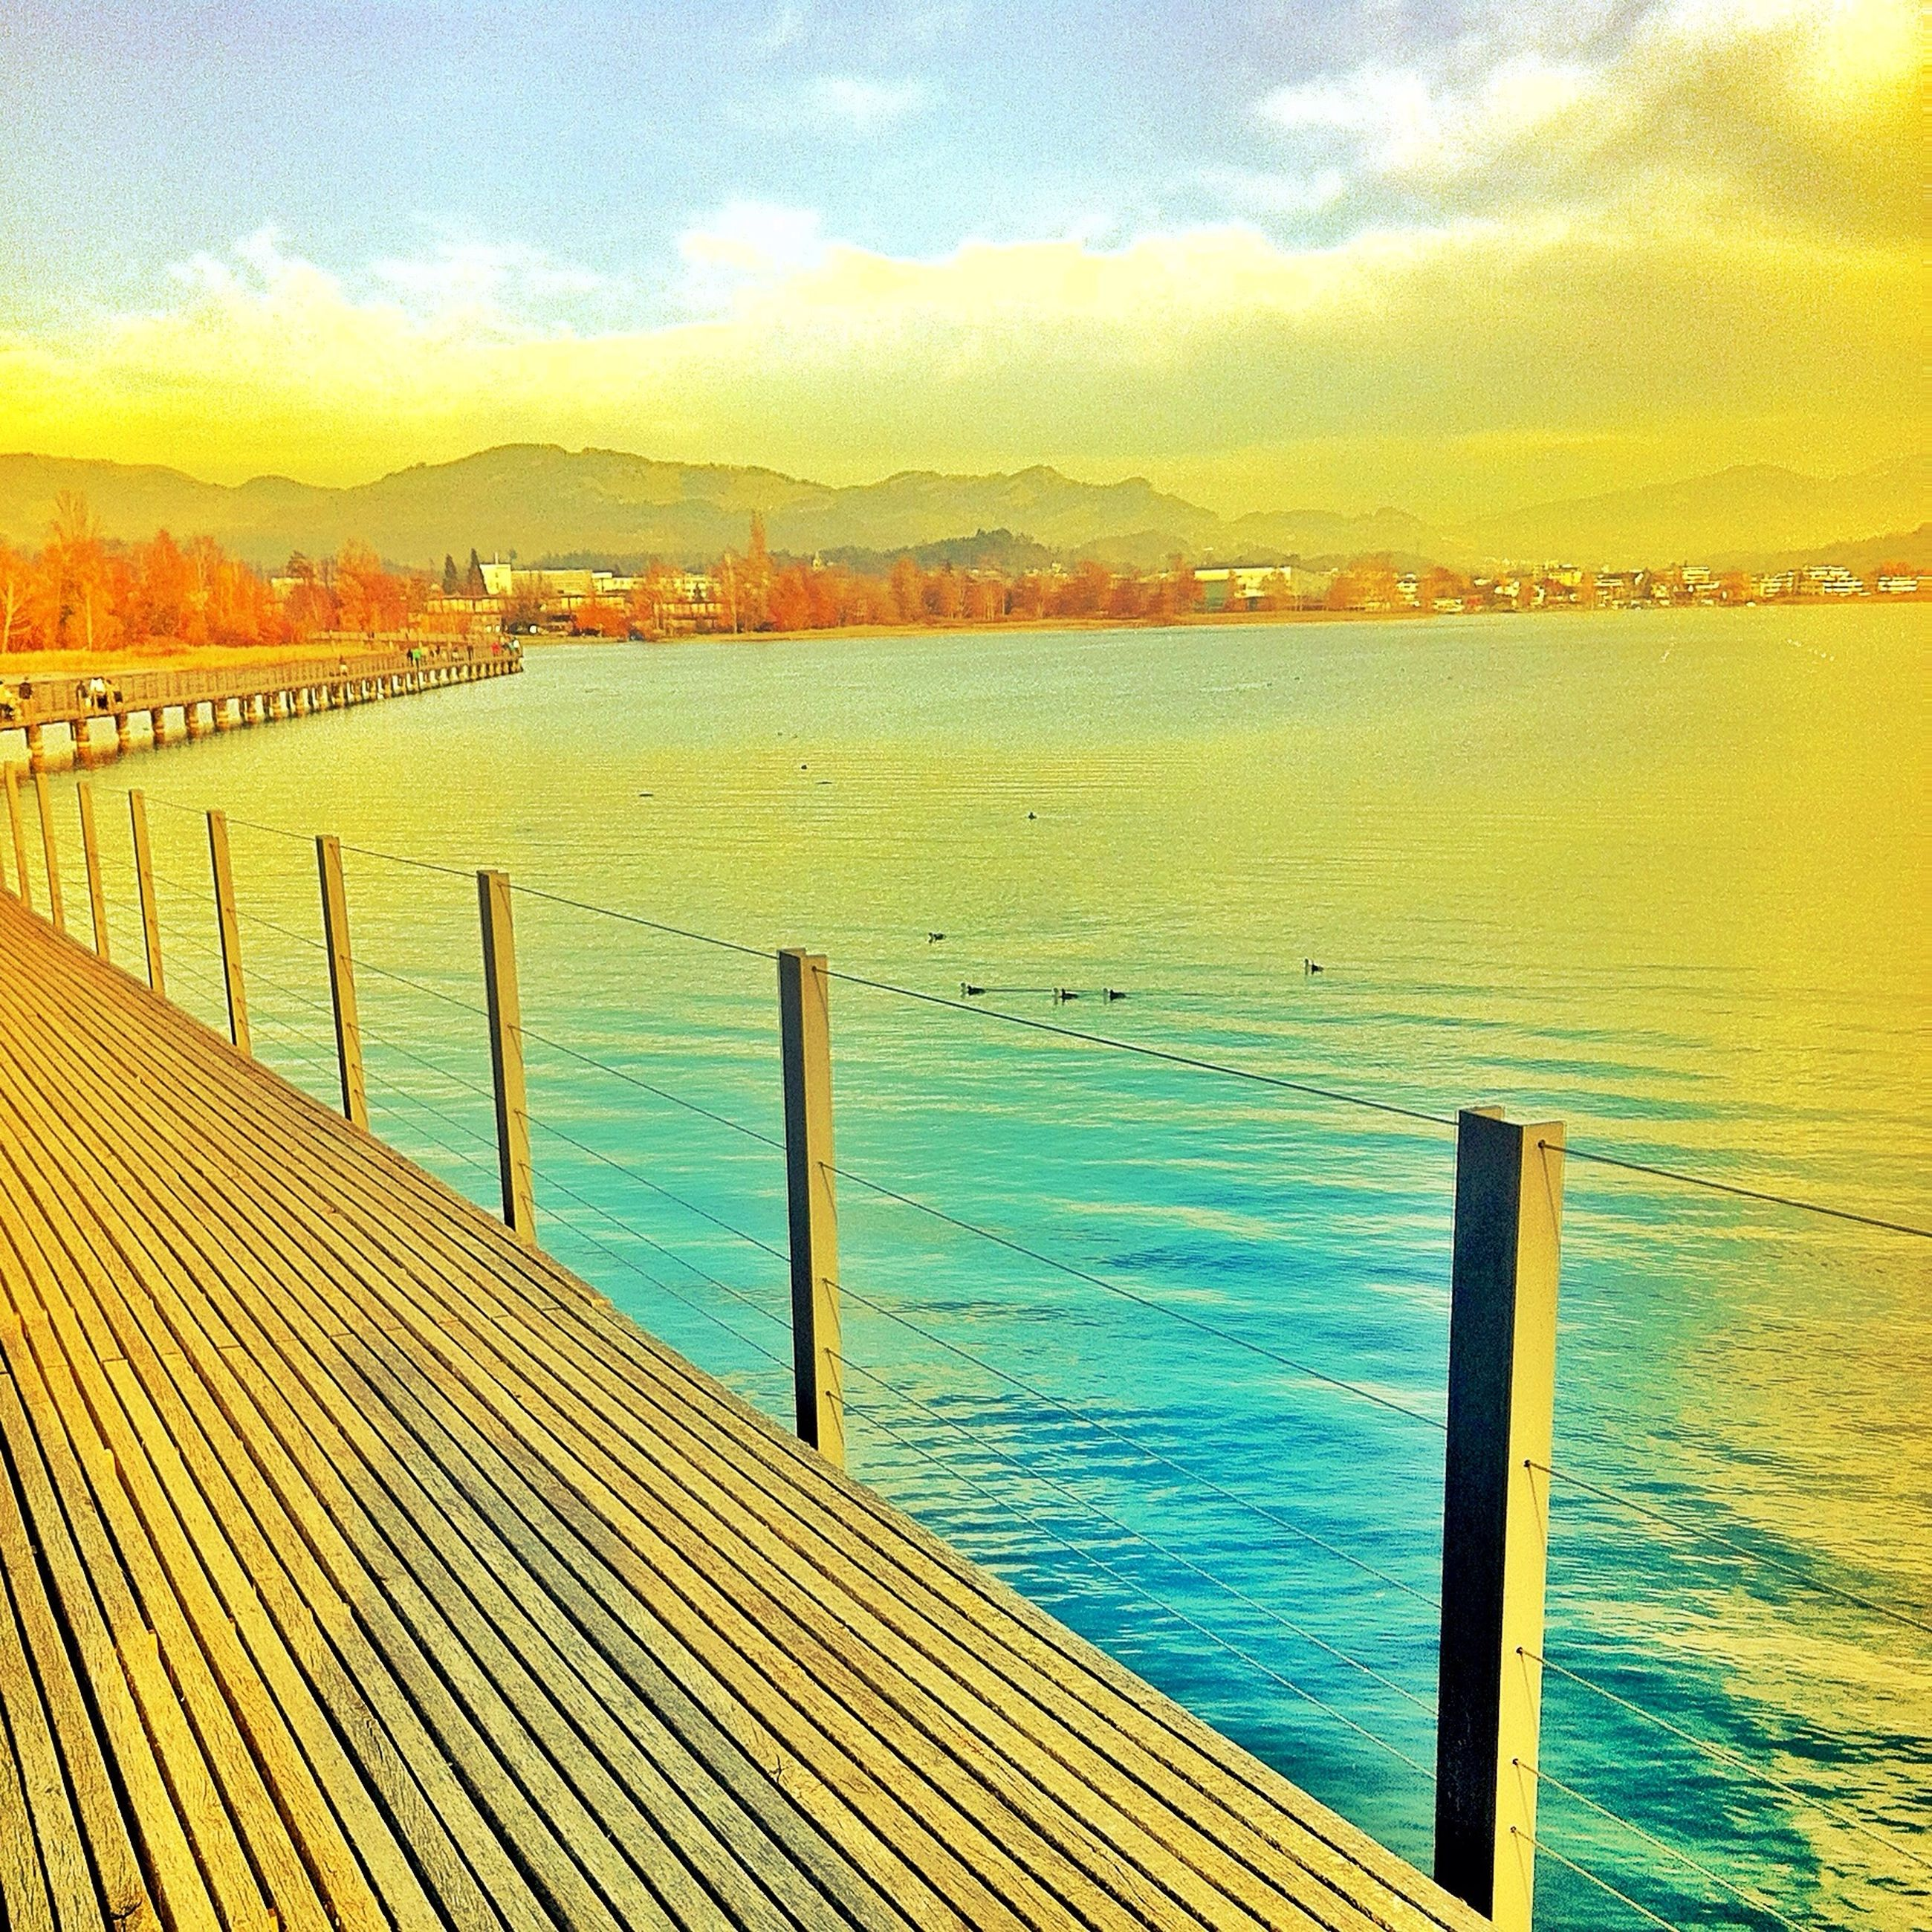 water, sea, tranquil scene, tranquility, scenics, pier, railing, sky, beauty in nature, nature, idyllic, wood - material, cloud - sky, rippled, jetty, cloud, fence, calm, mountain, ocean